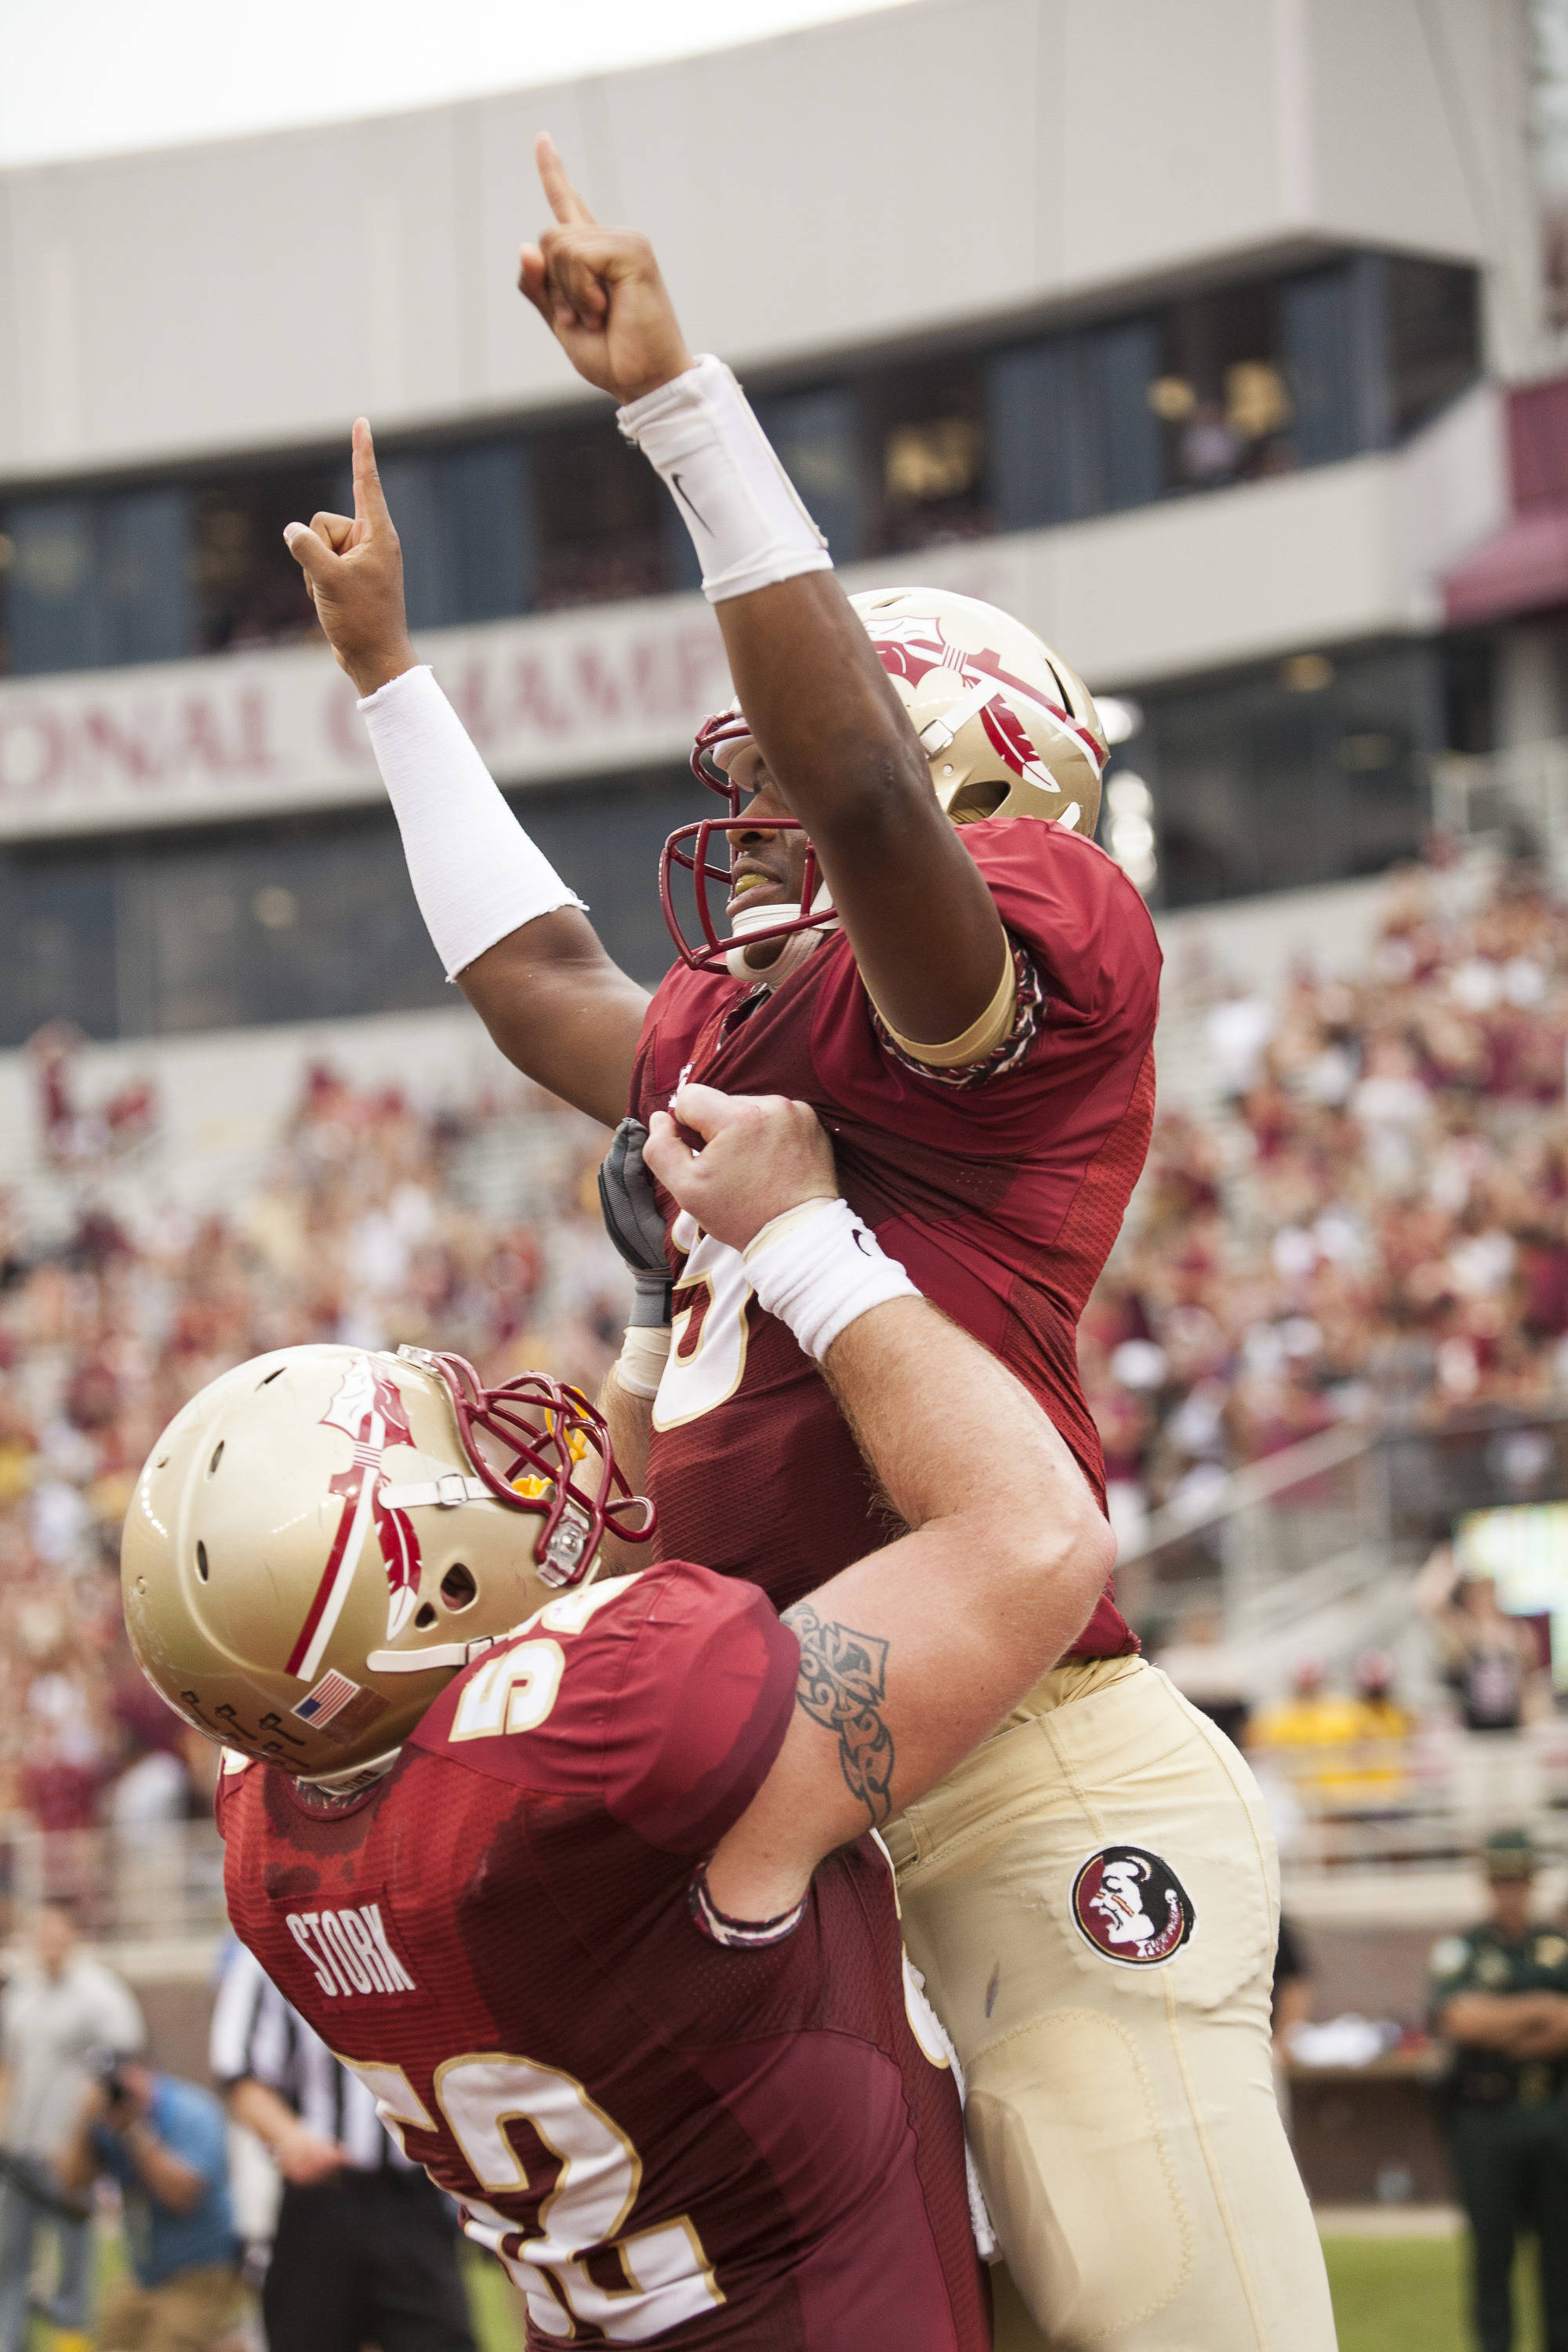 Jameis Winston (5) celebrates after scoring a touchdown during FSU's 62-7 win over Nevada on Saturday, Sept 14, 2013 in Tallahassee, Fla.